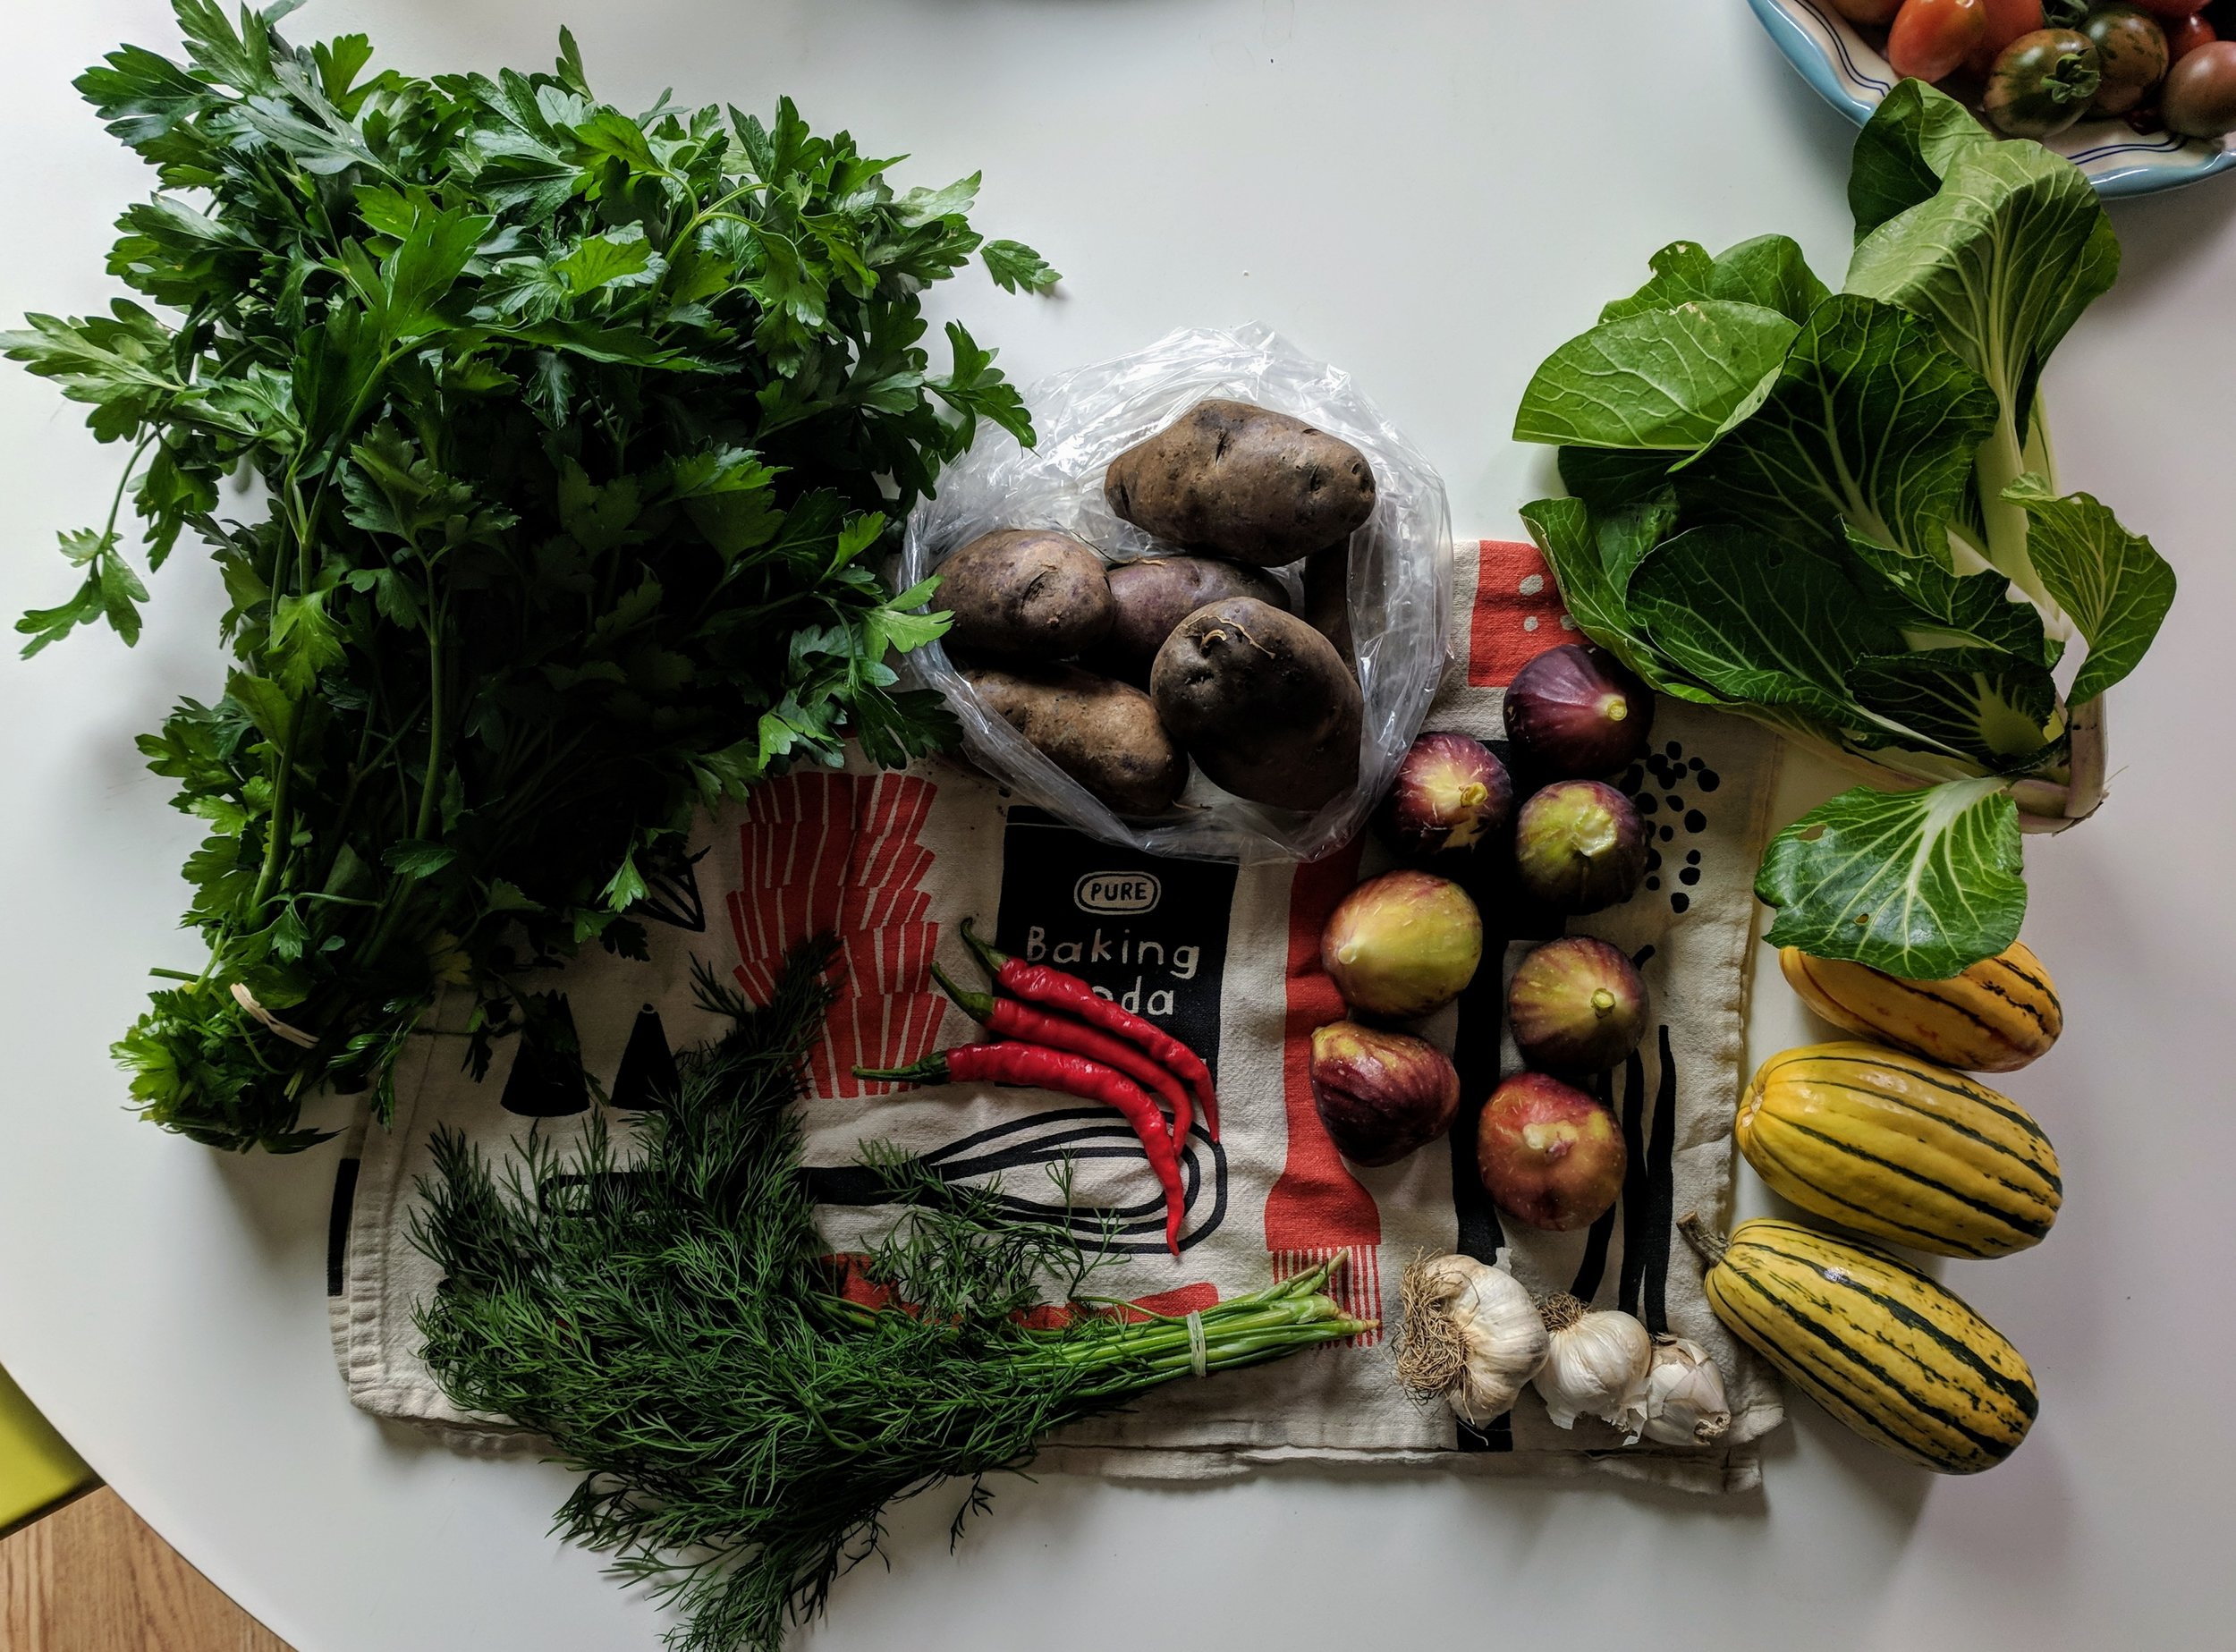 September rules. Pictured: weekend farmers market haul from Lents International Farmers Market